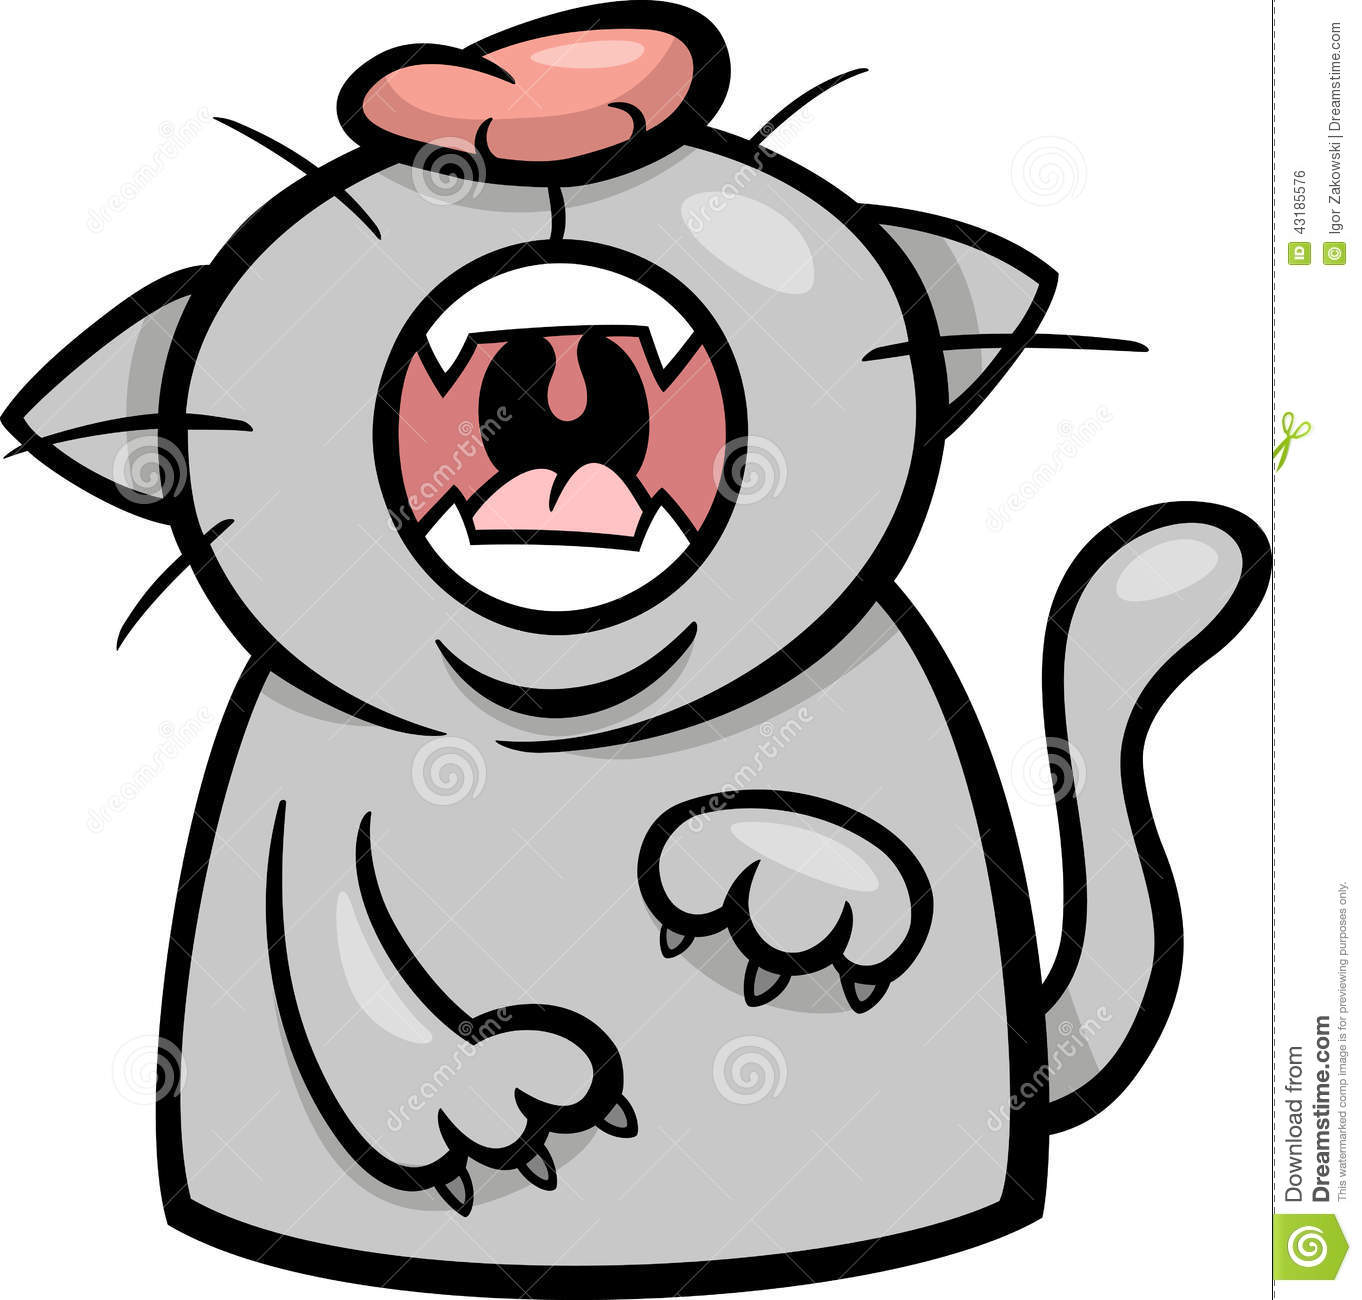 Cartoon Illustration of Funny Yawning or Moewing Cat.